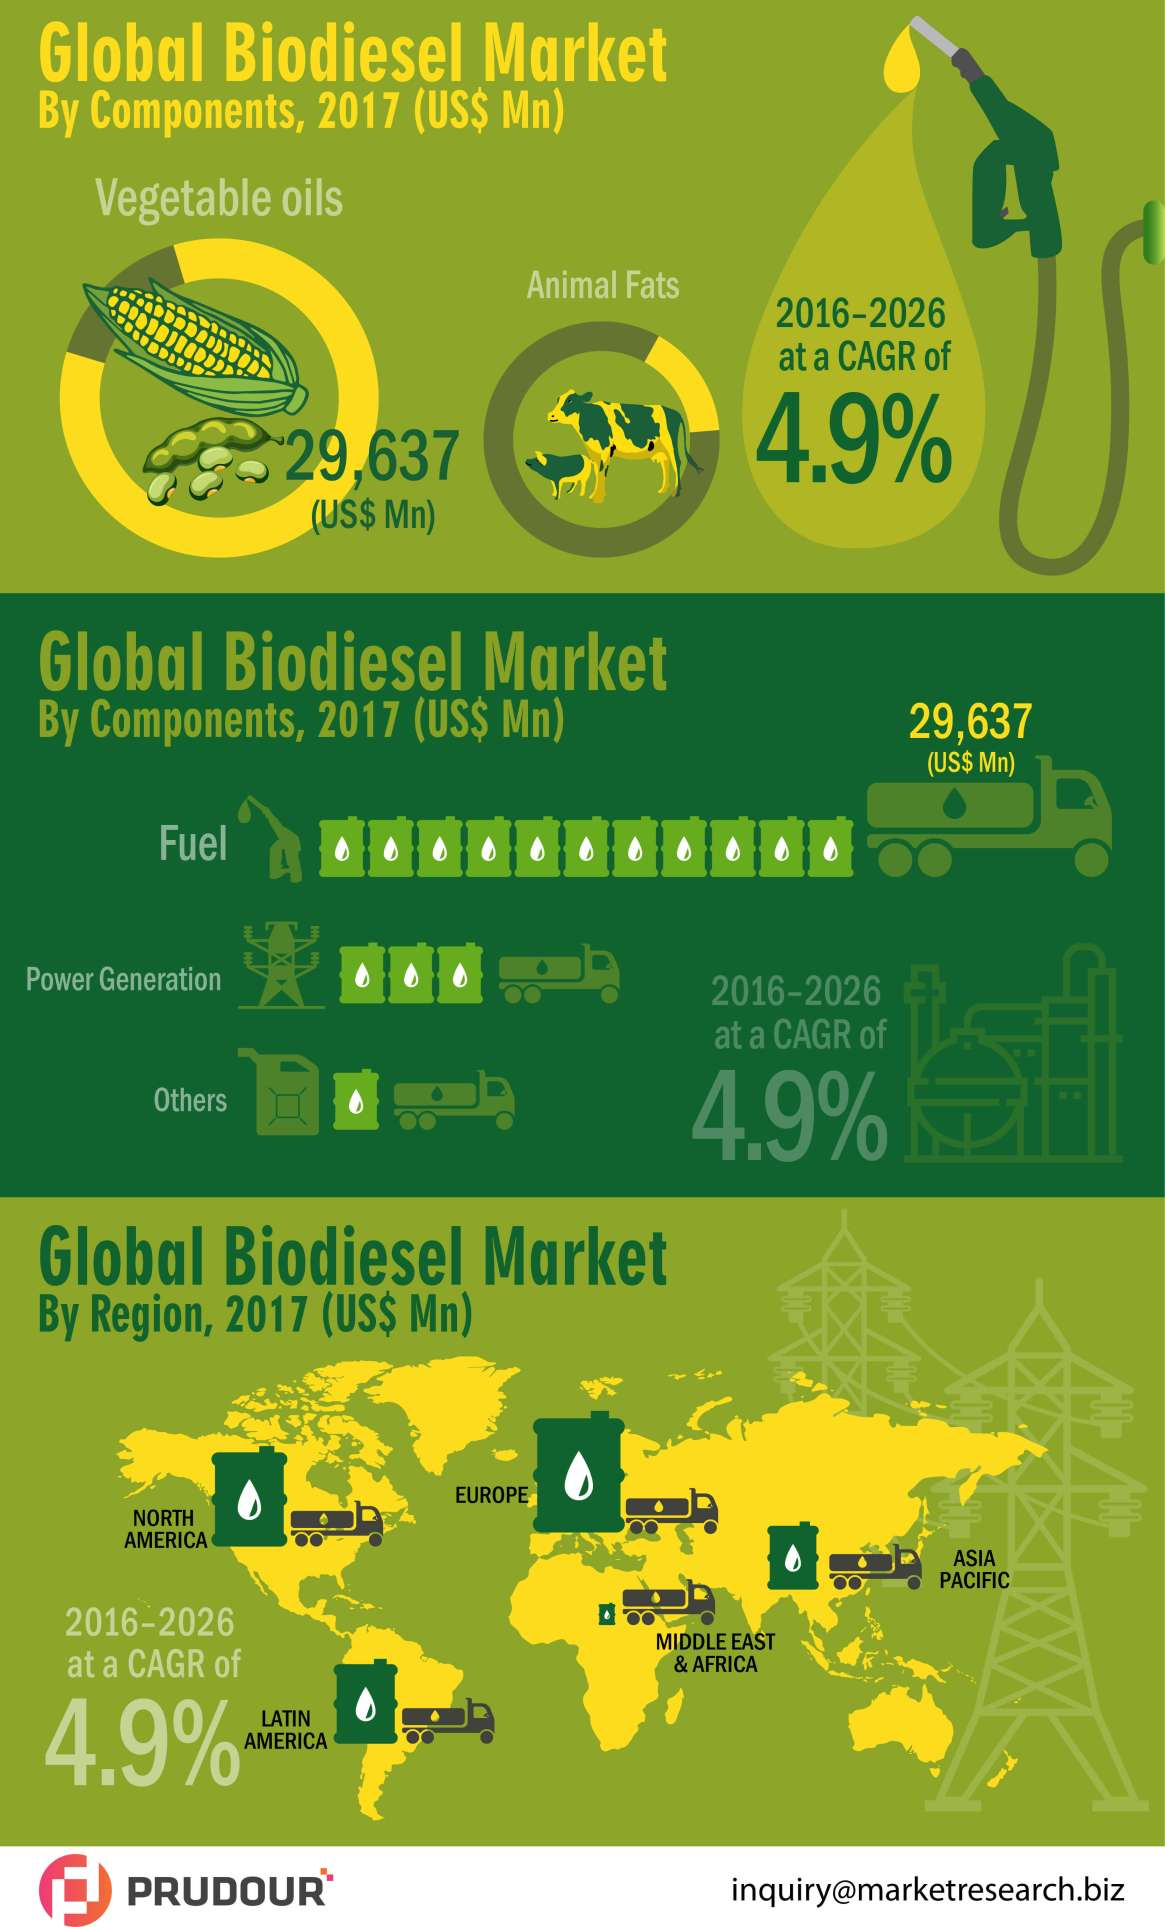 To register CAGR Of 4%: Global Biodiesel Market about to hit CAGR of 4% from 2017 to 2026